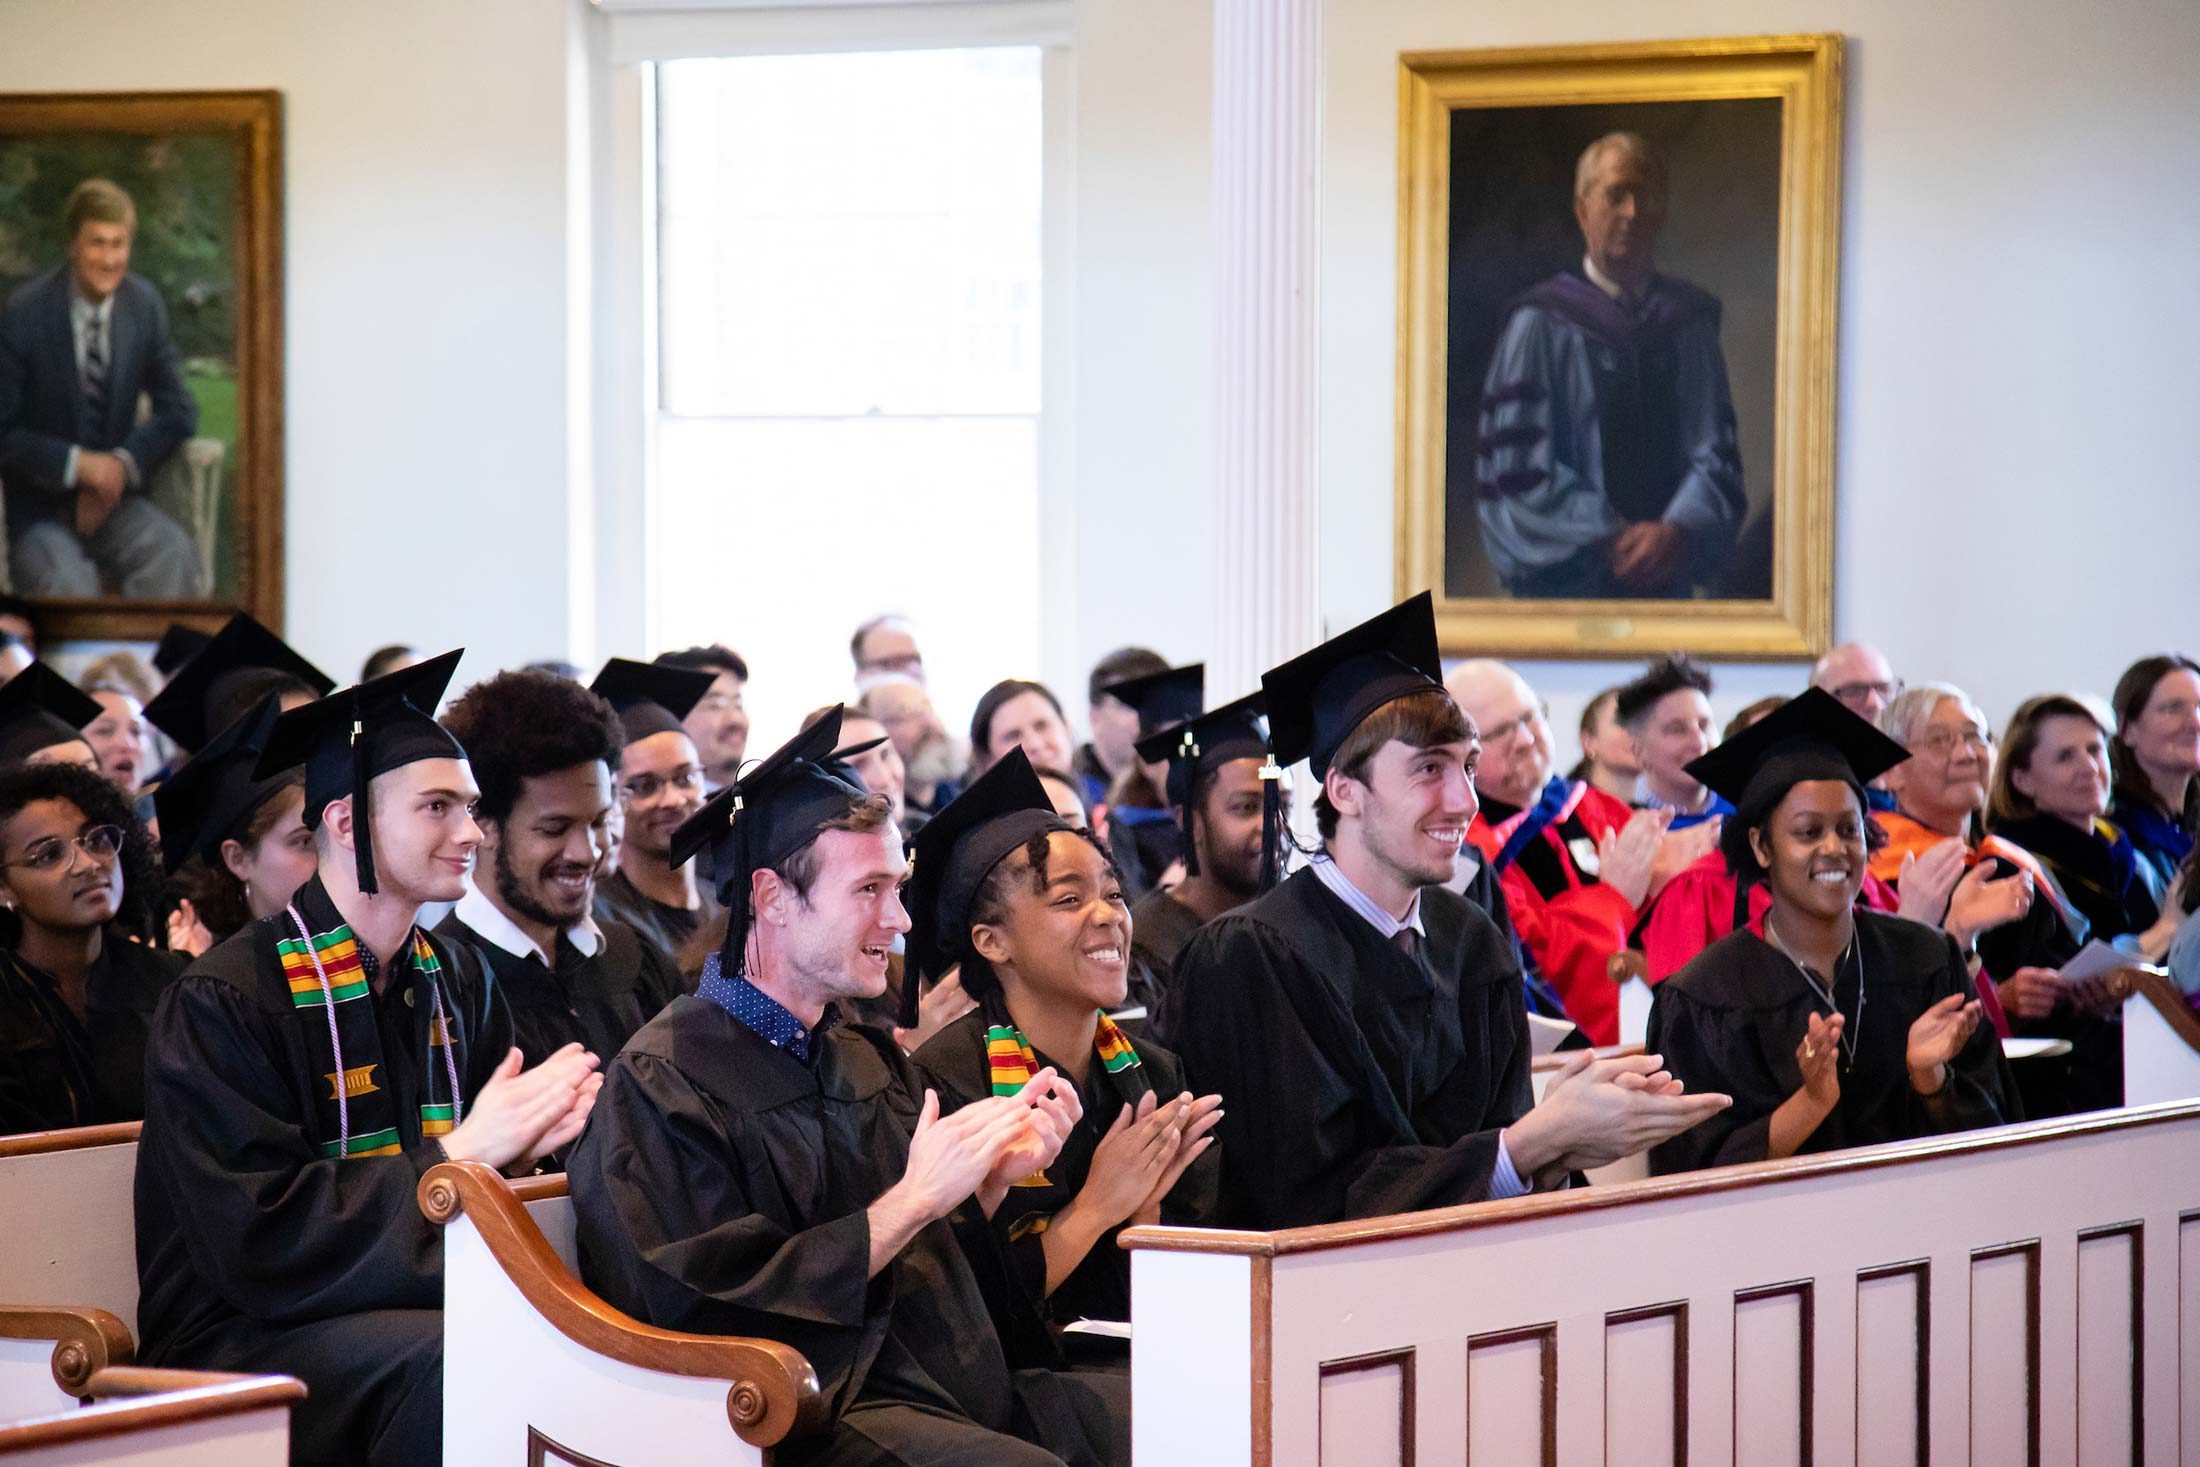 Students listening to speeches during Senior Awards Assembly in Johnson Chapel at Amherst College